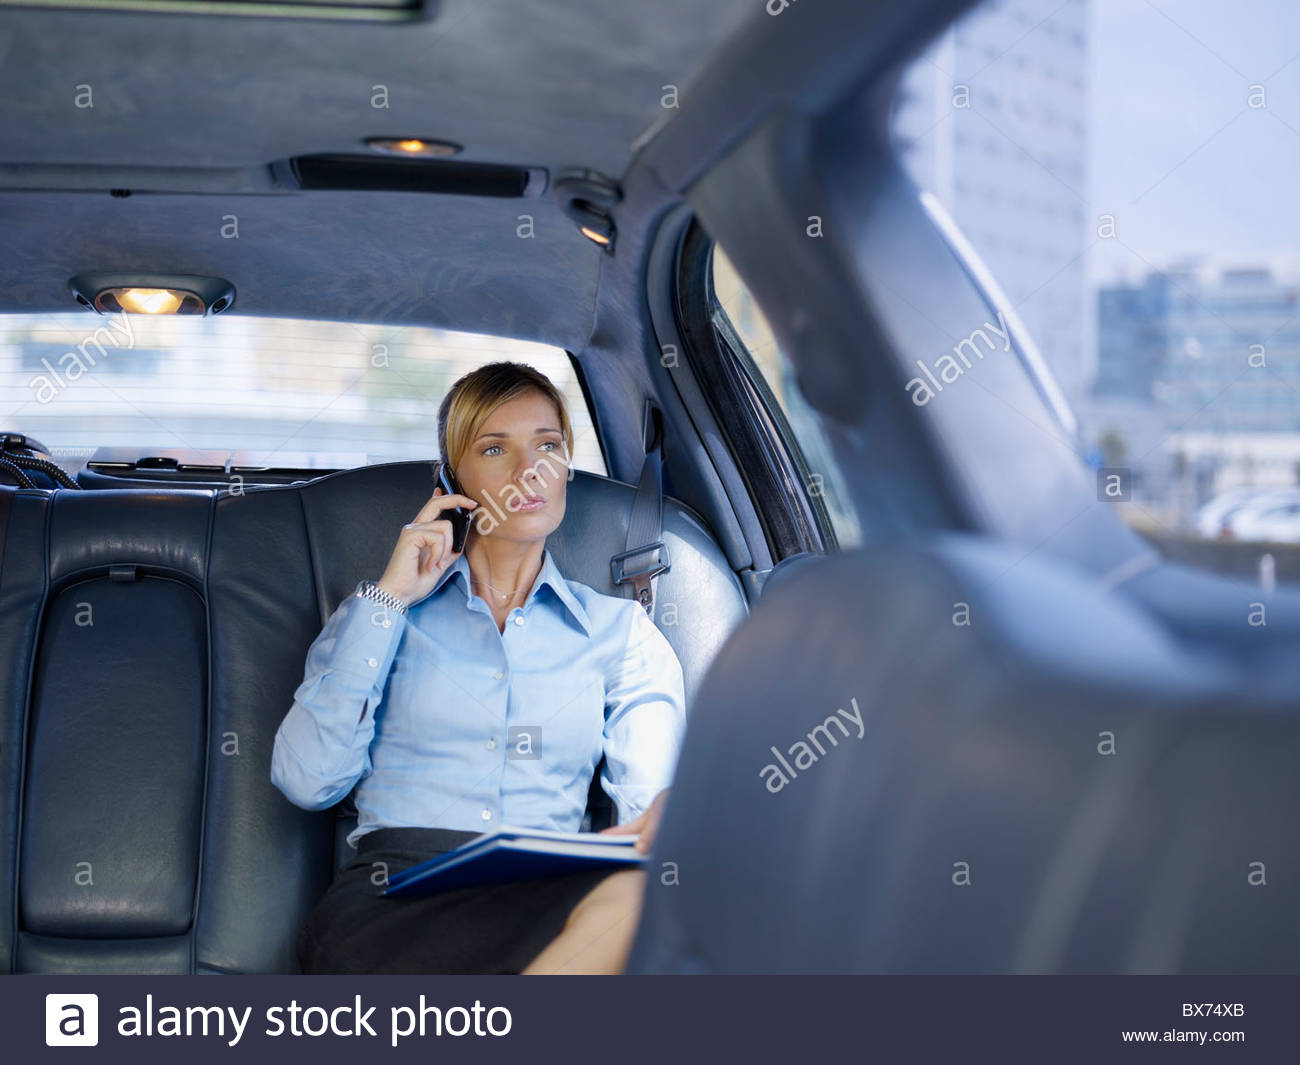 Businesswoman with phone in limousine - Stock Image